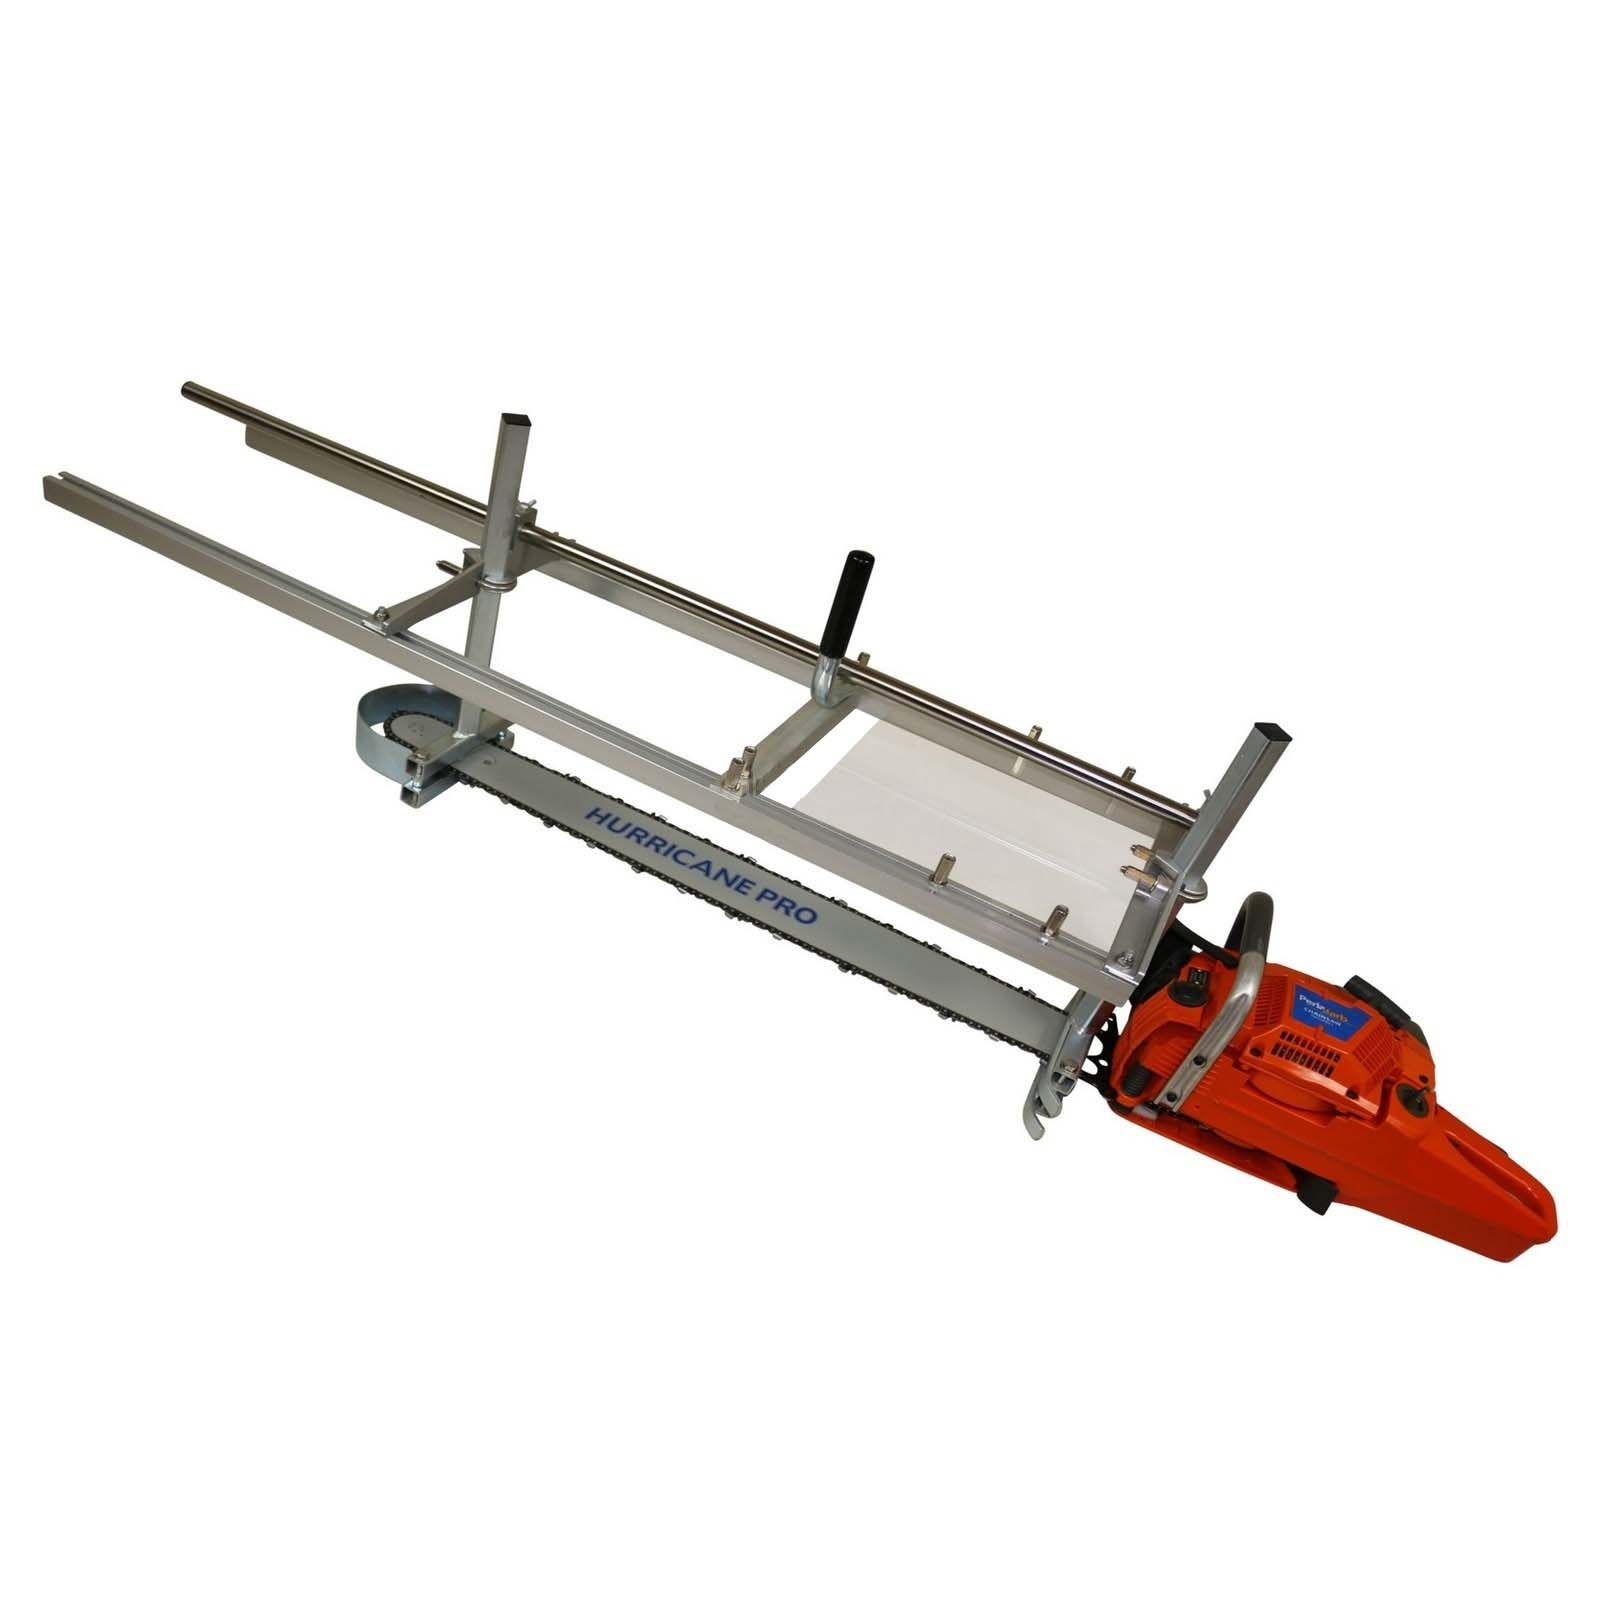 "Milling Slabbing Mill Kit 70cc Chainsaw 30"" Bar 3/8 Semi Chisel Ripping Chain"